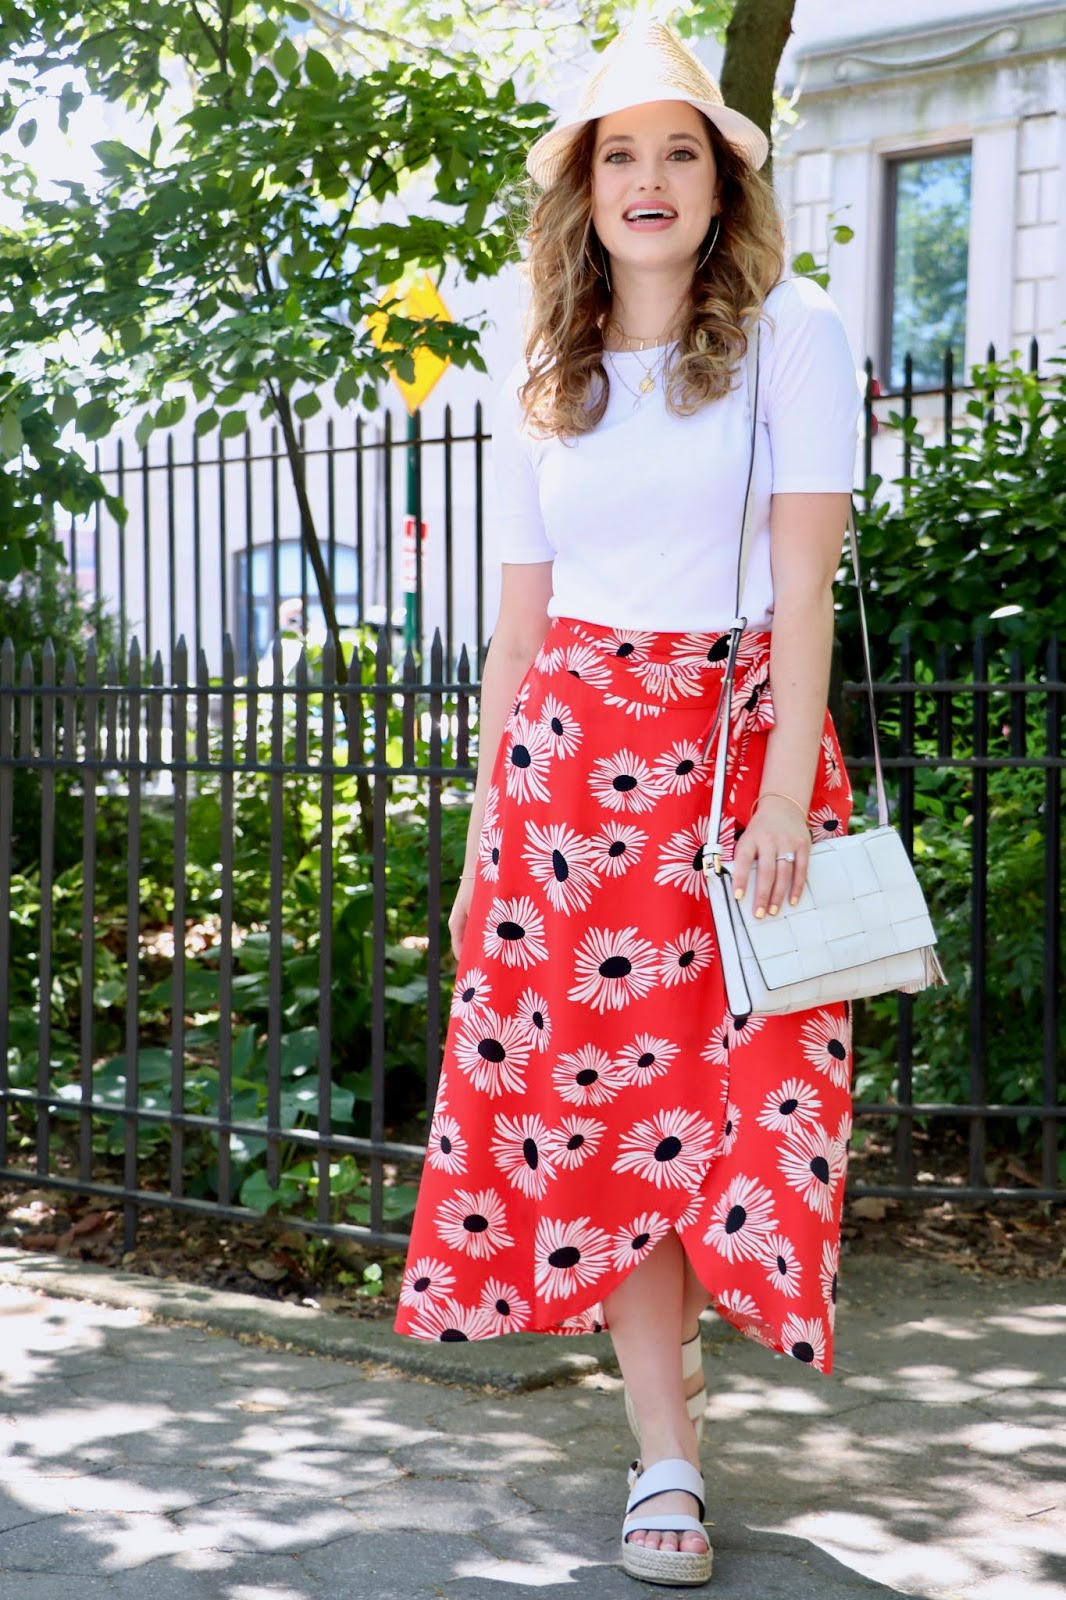 Nyc fashion blogger Kathleen Harper's white tee outfit idea for spring or summer.